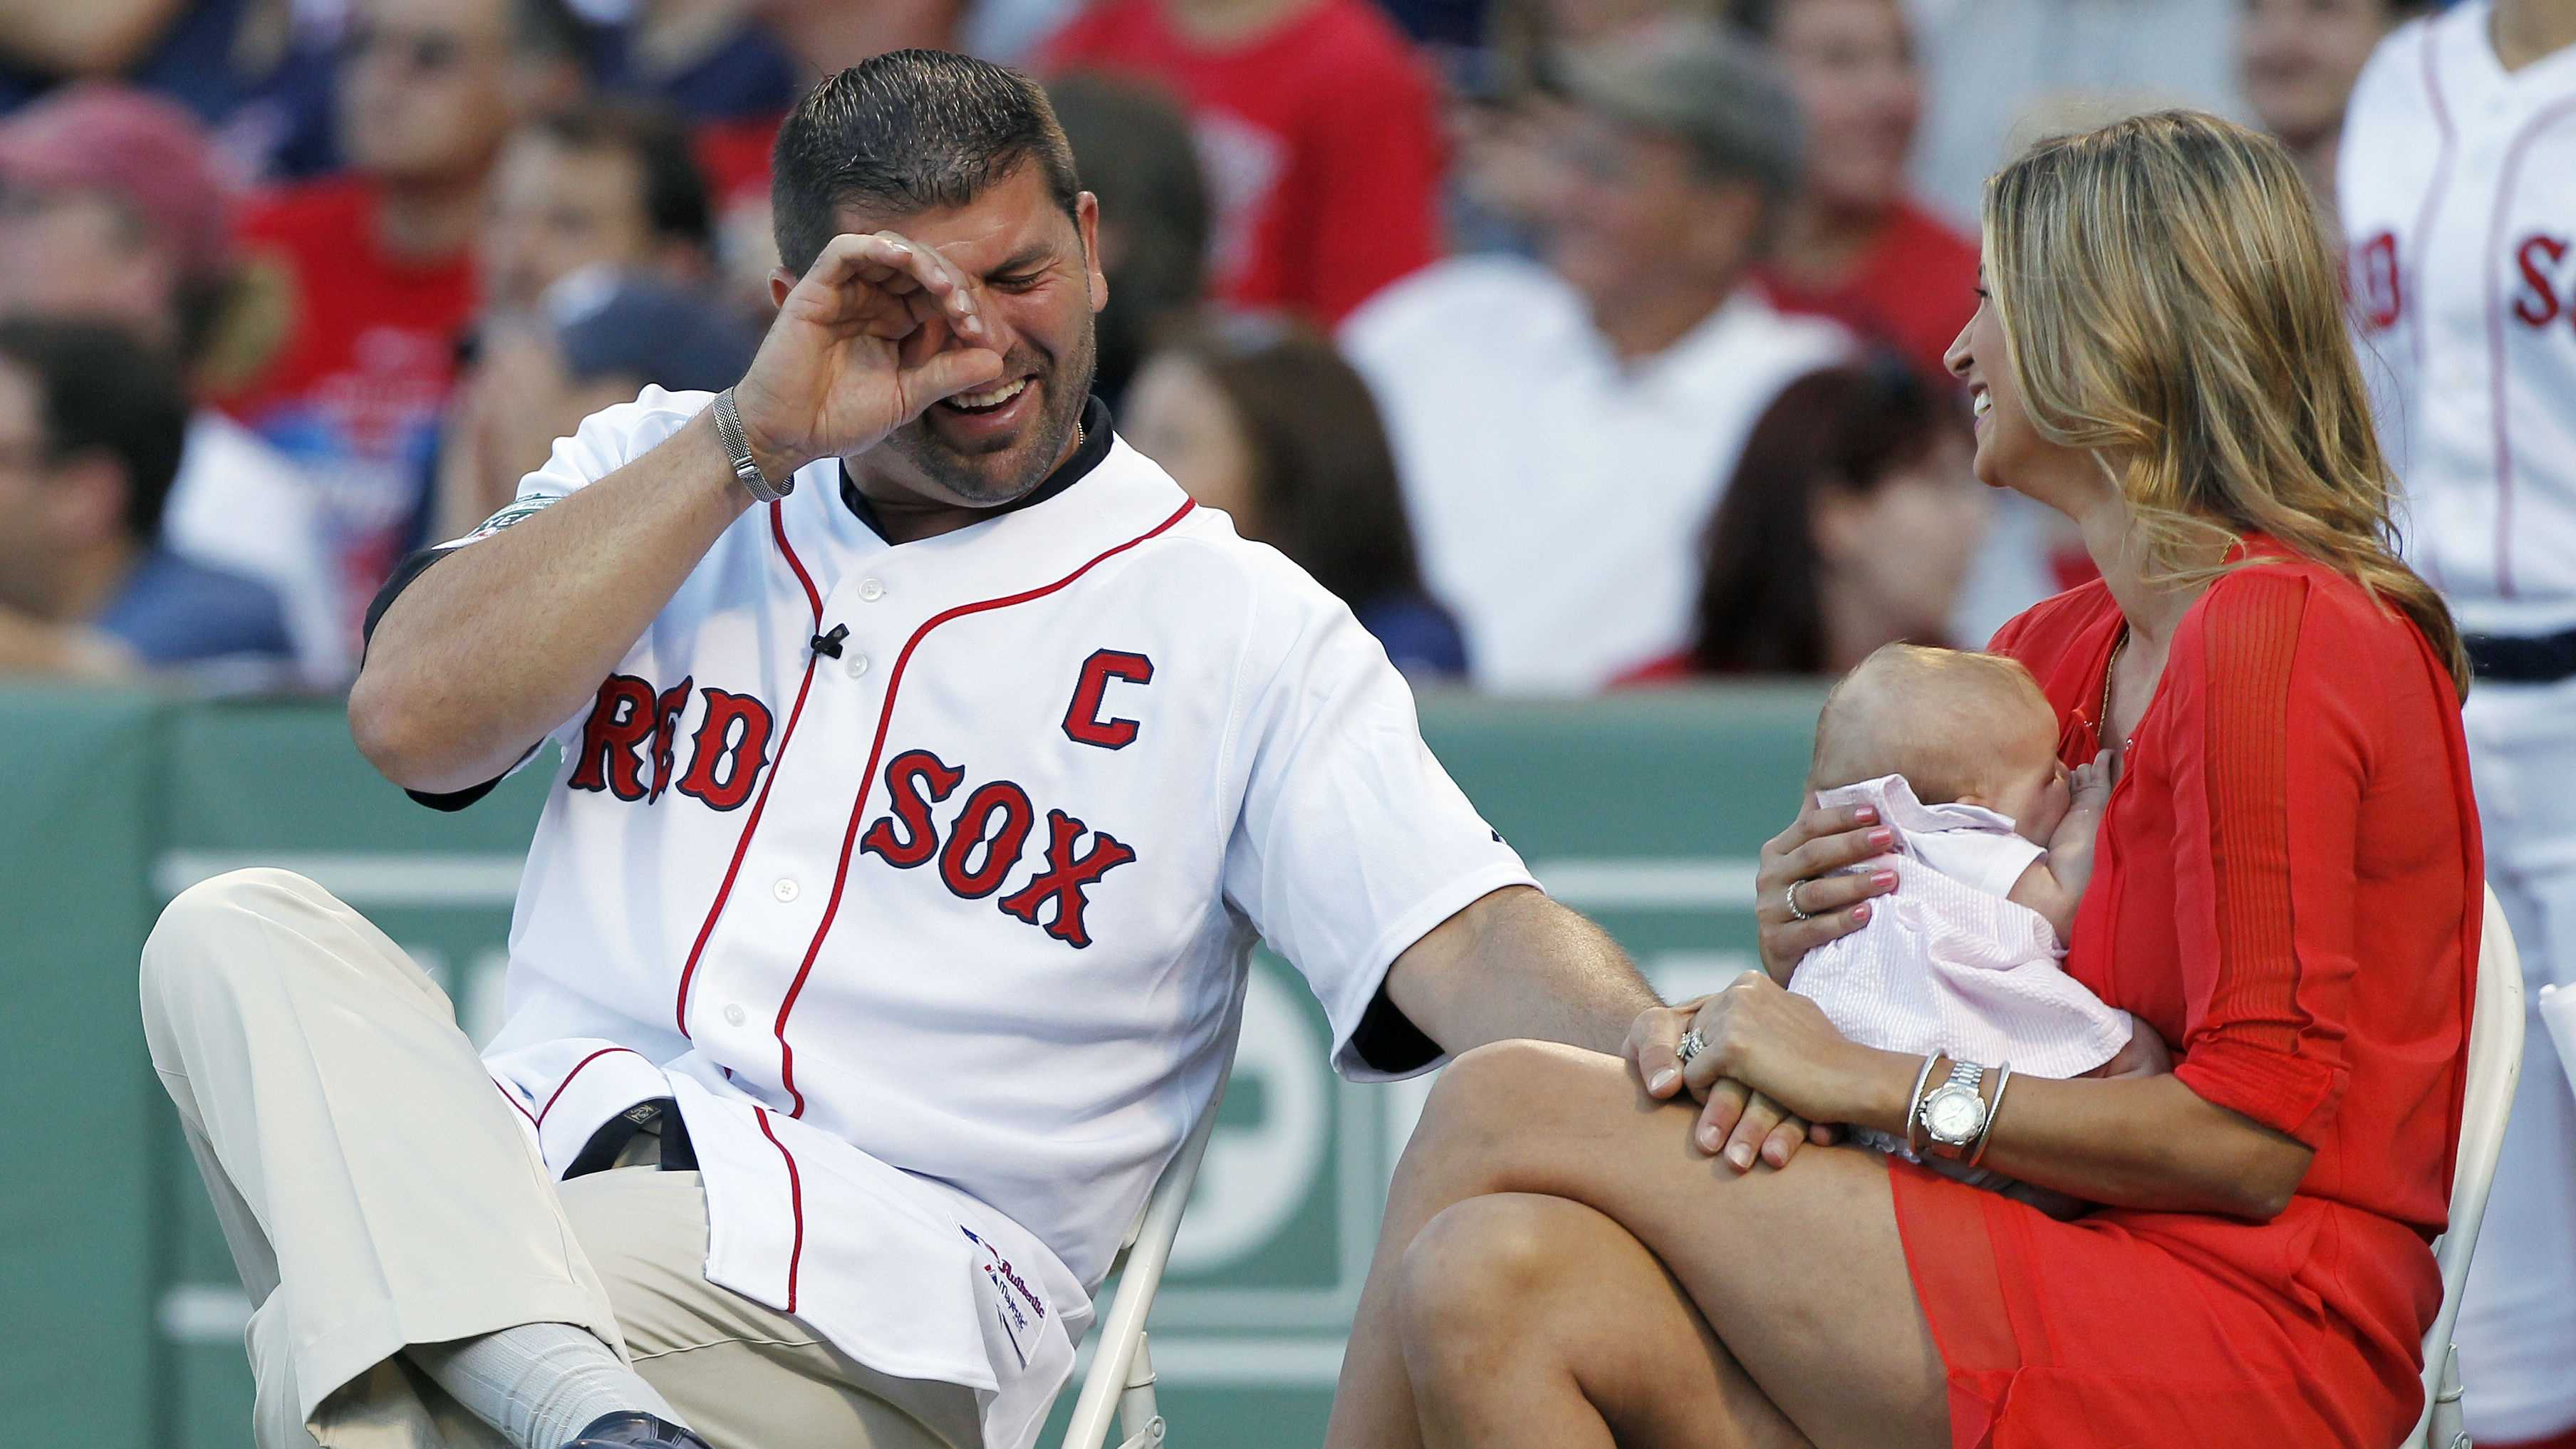 Former Boston Red Sox player Jason Varitek, left, reacts next to his wife Catherine and baby daughter Liv during a ceremony to honor his time with the team.